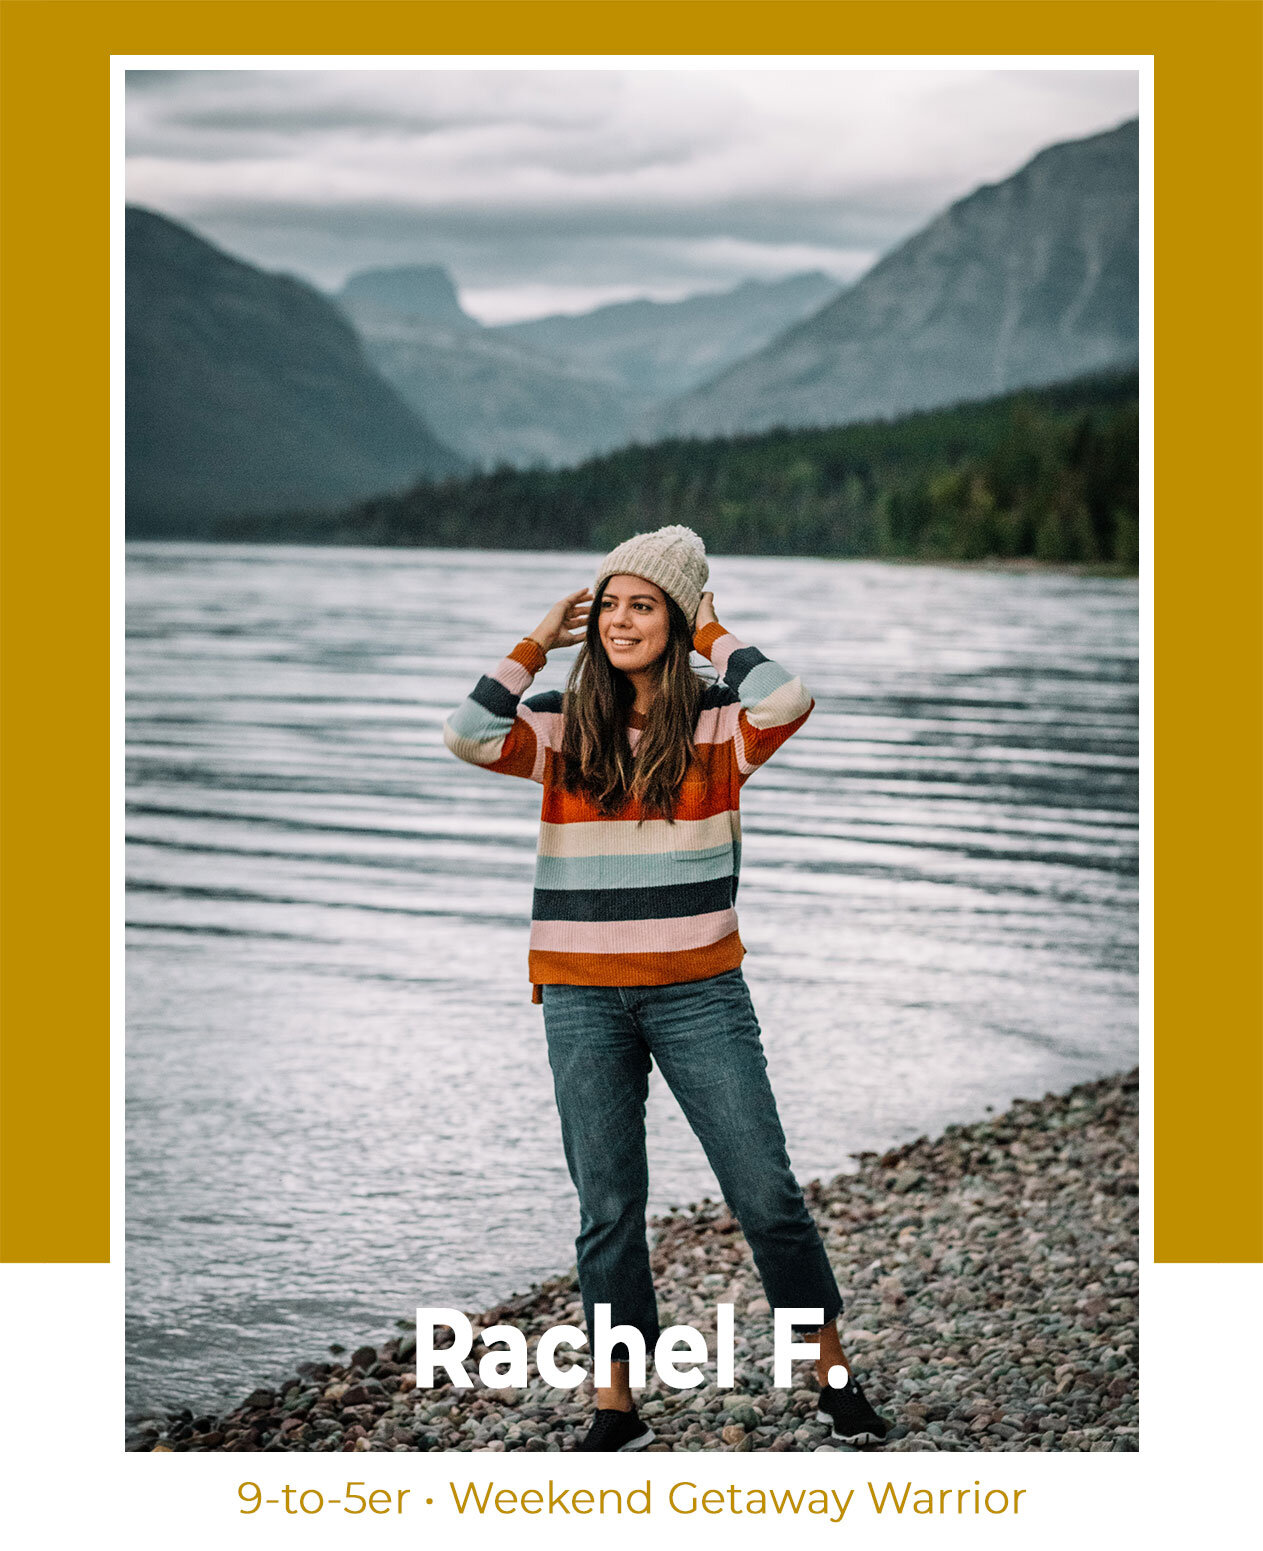 Rachel Off Duty: How These Women Travel More While Maintaining Their Careers - Episode 1 - Rachel-Jean Firchau